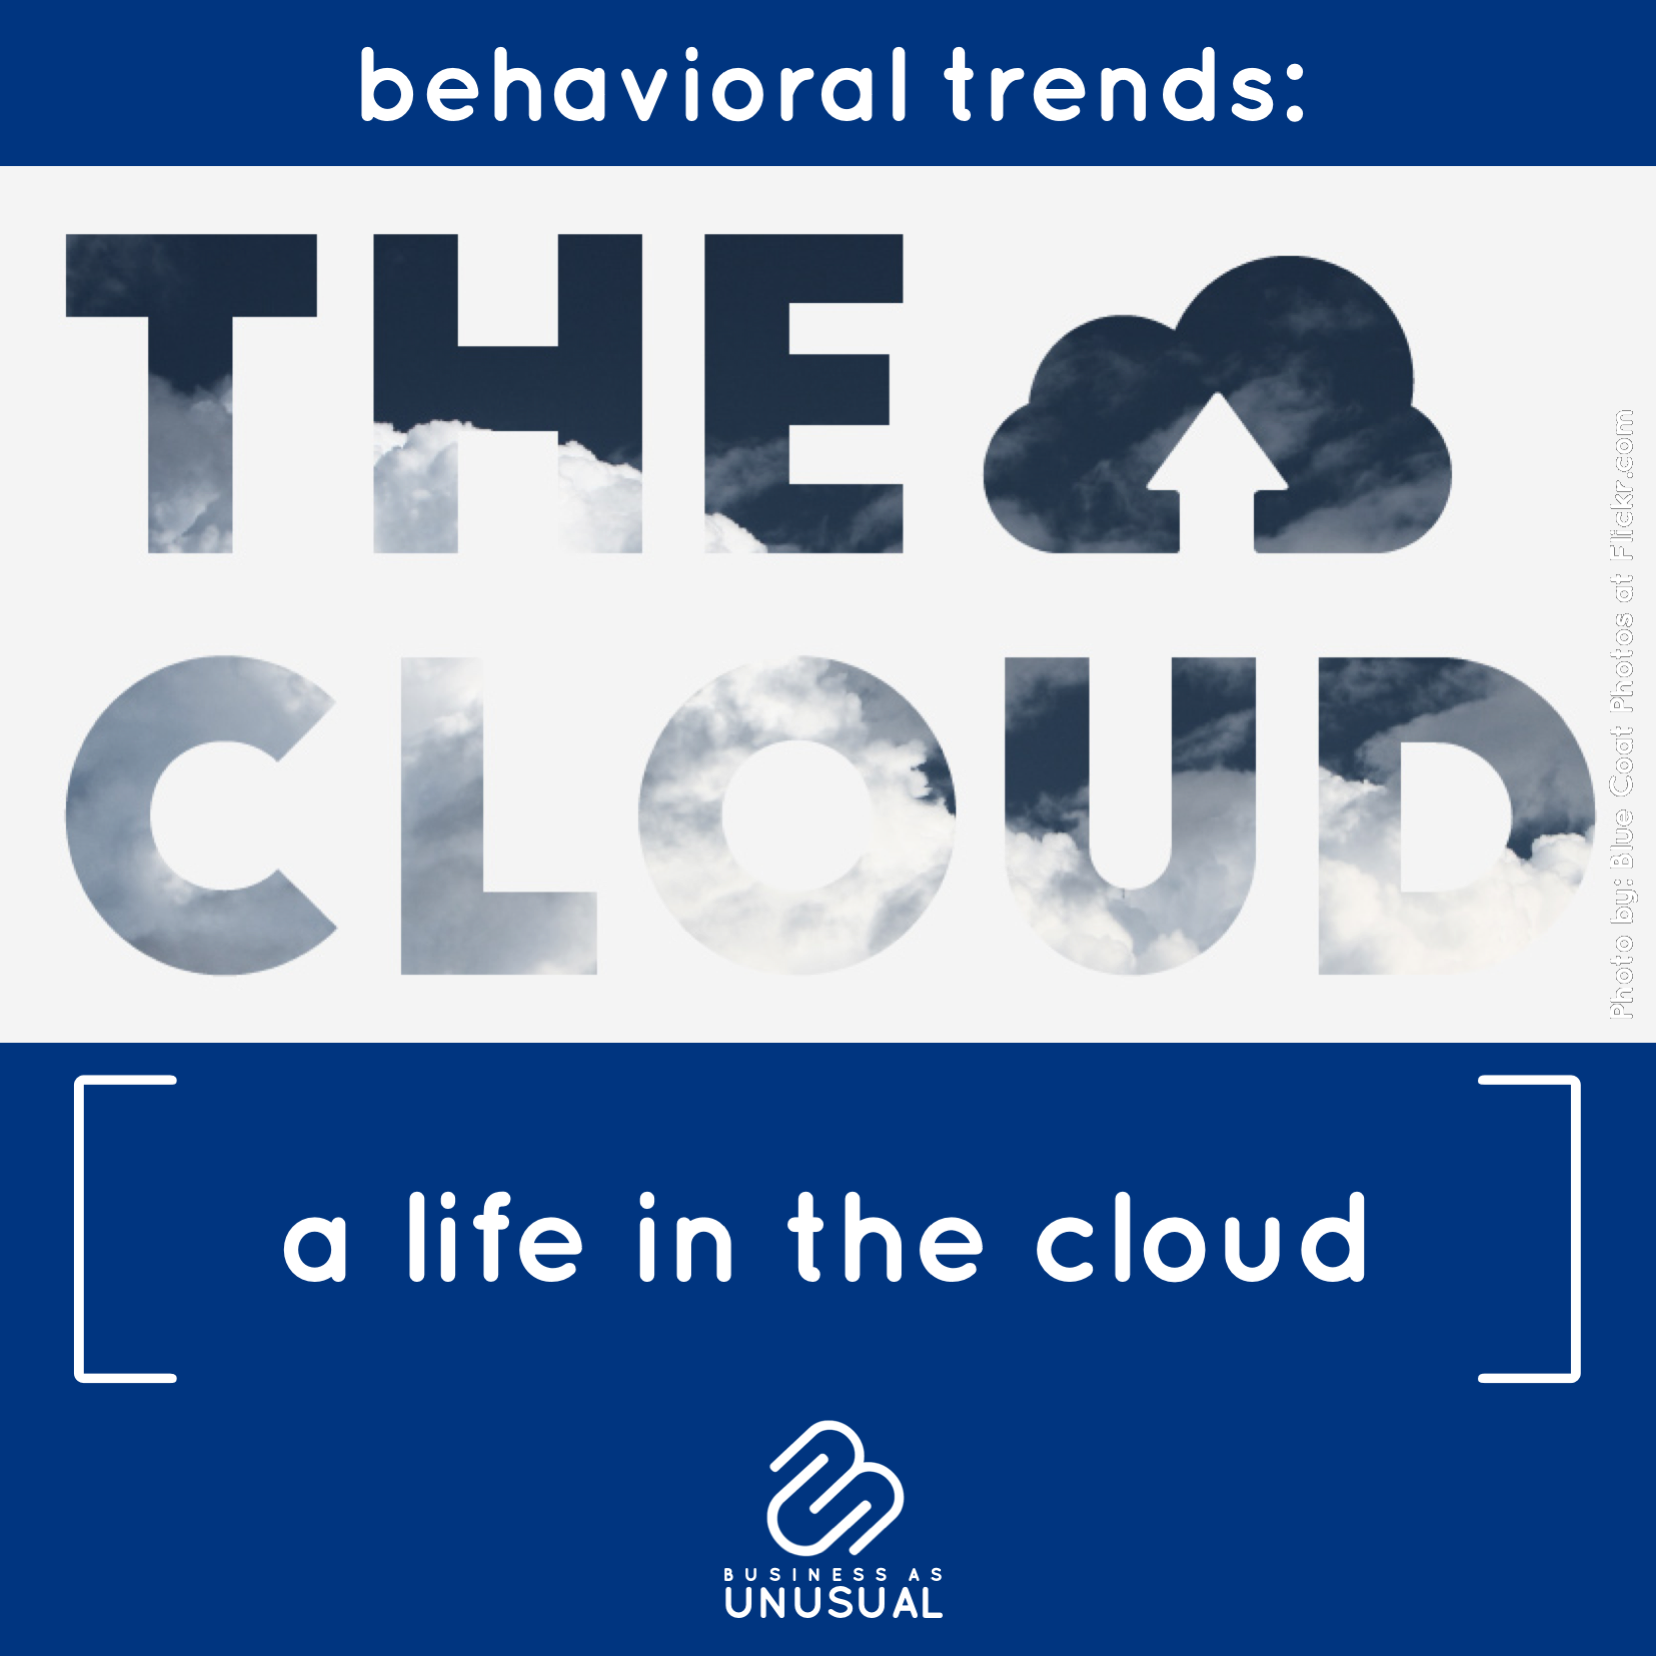 Behavioral Trends: A Life in the Cloud